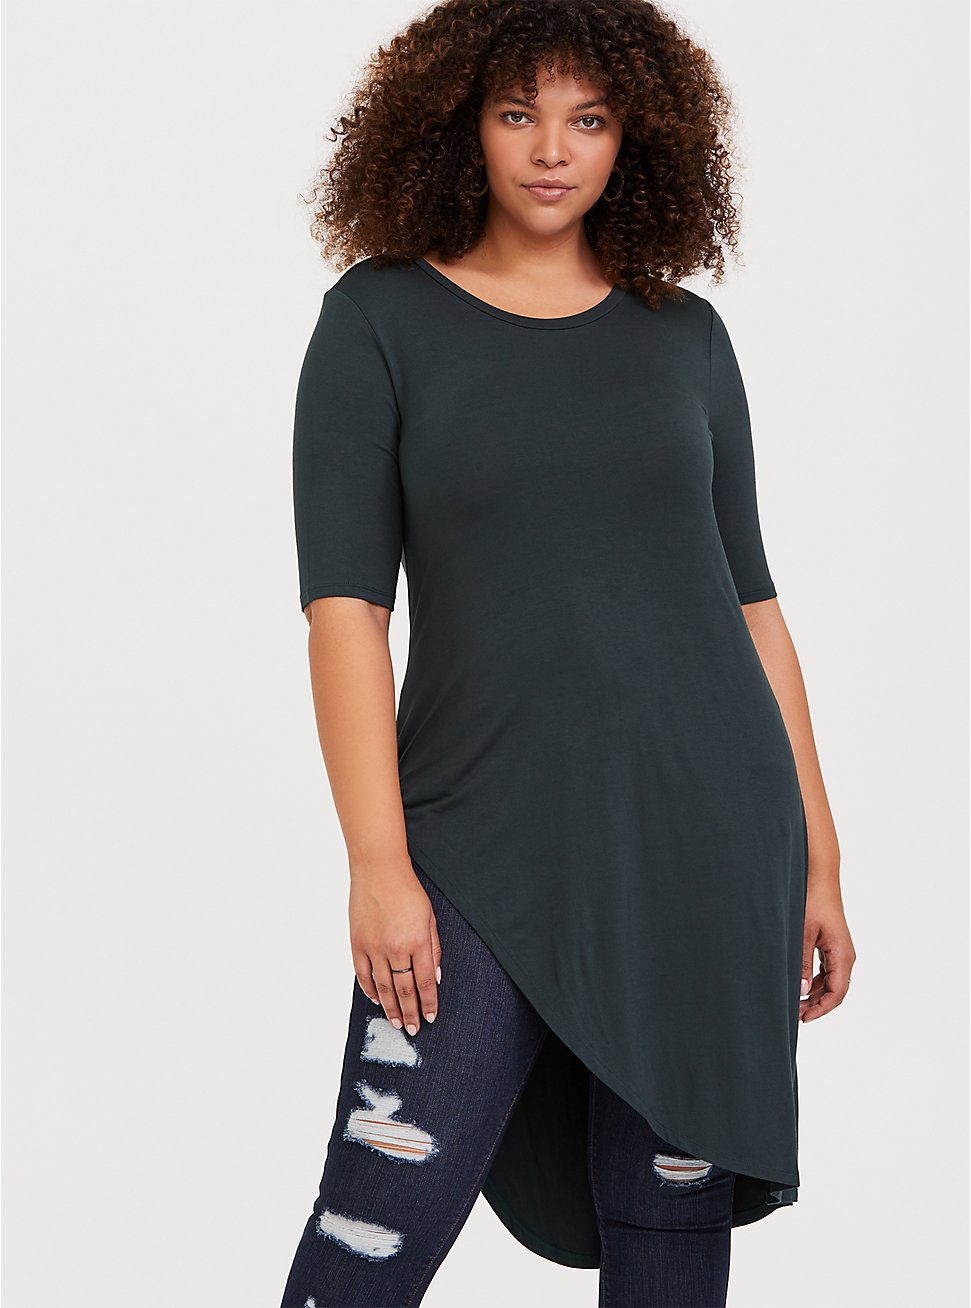 Super Soft Green Knotted Asymmetrical Tunic Tee, GREEN GABLES, hi-res